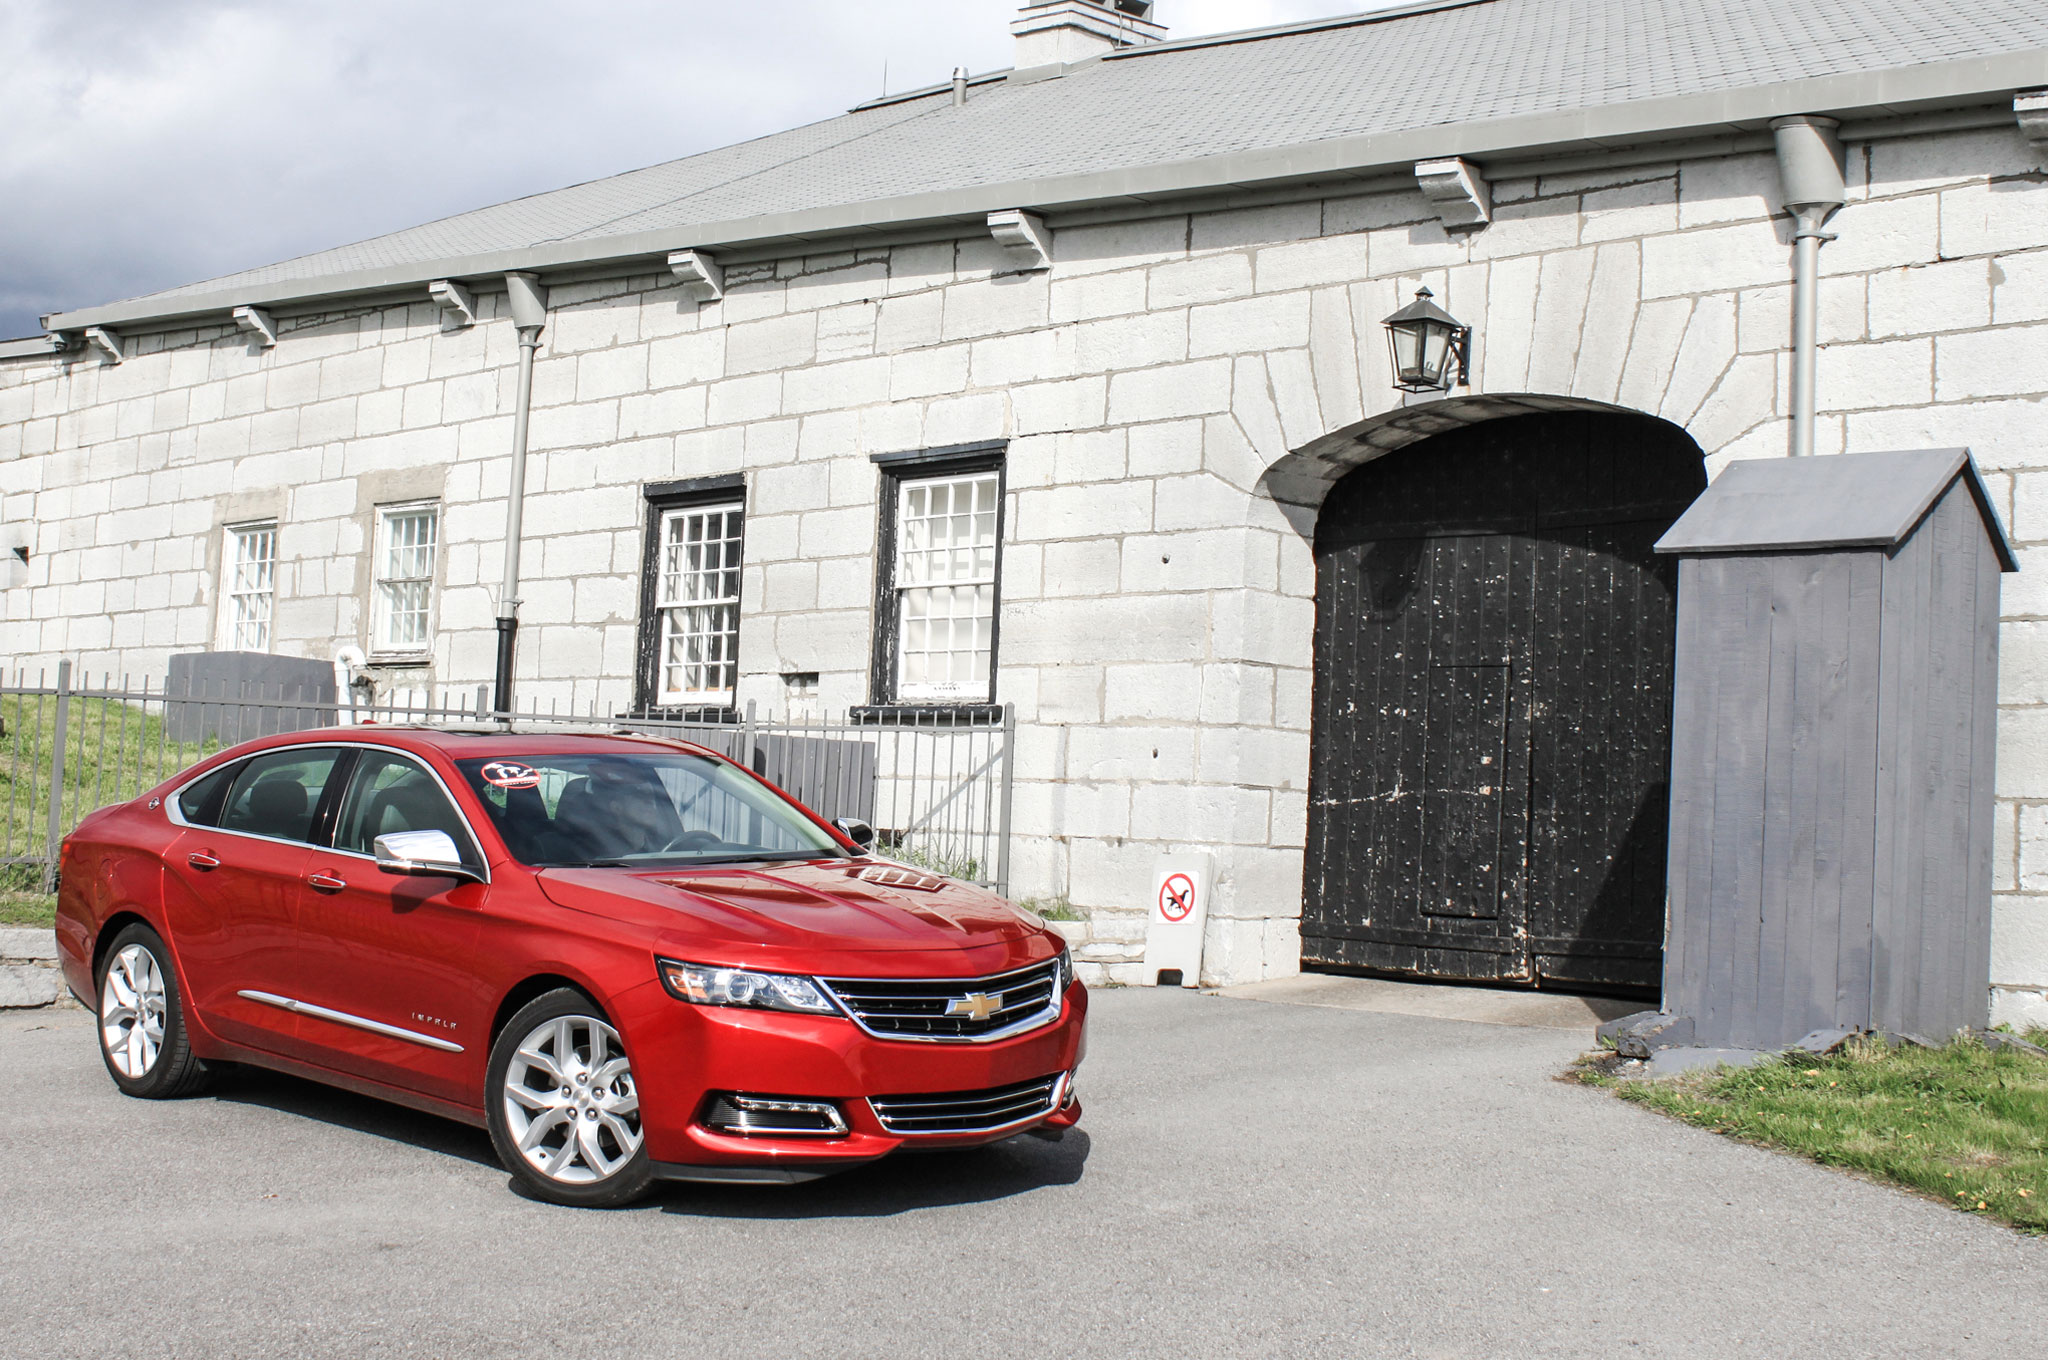 2014 Chevrolet Impala Lake Ontario Front Right Side View 101